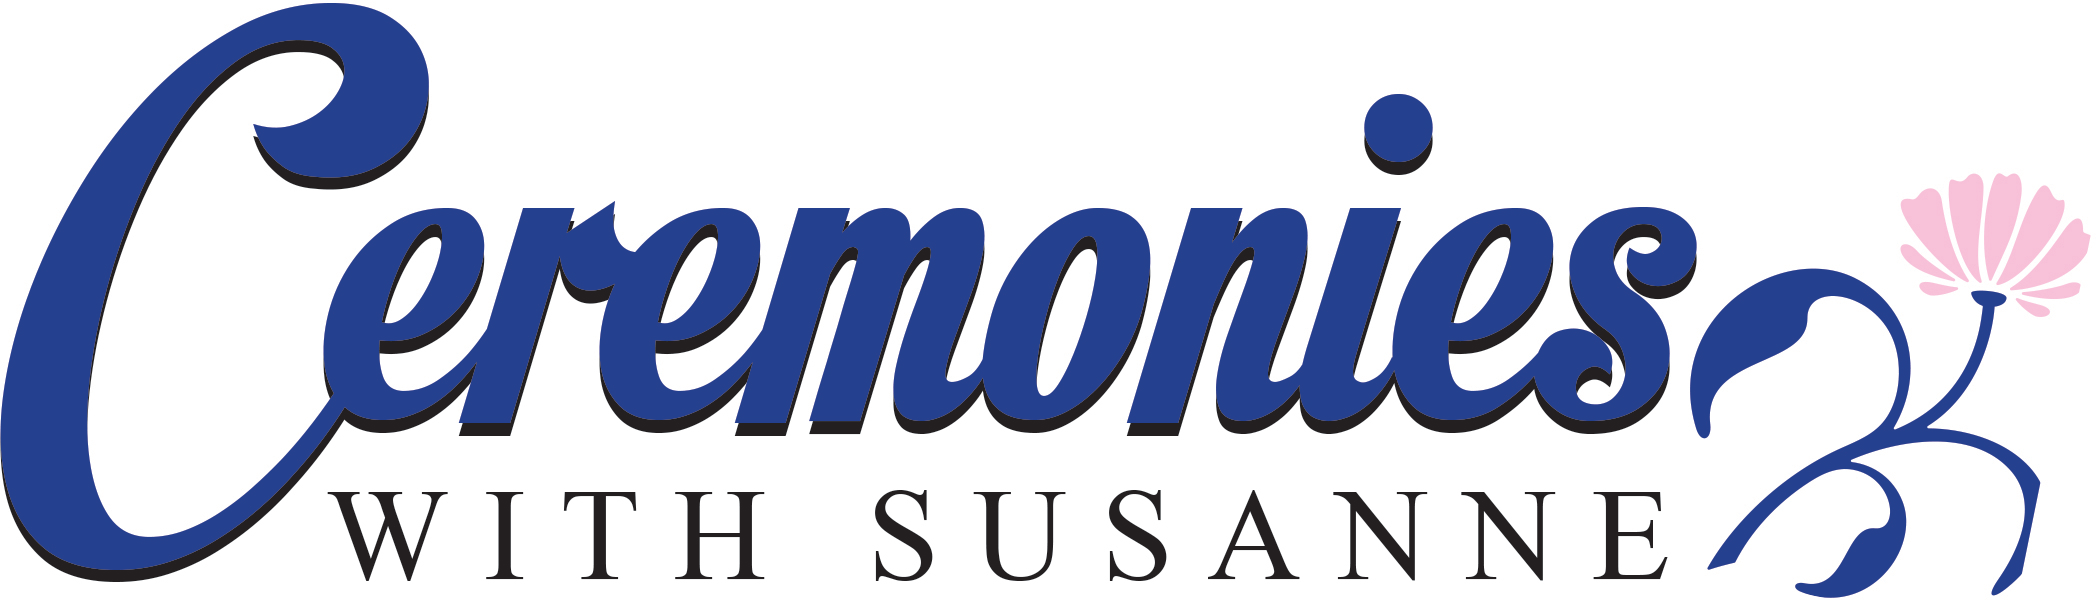 Ceremonies with Susanne logo